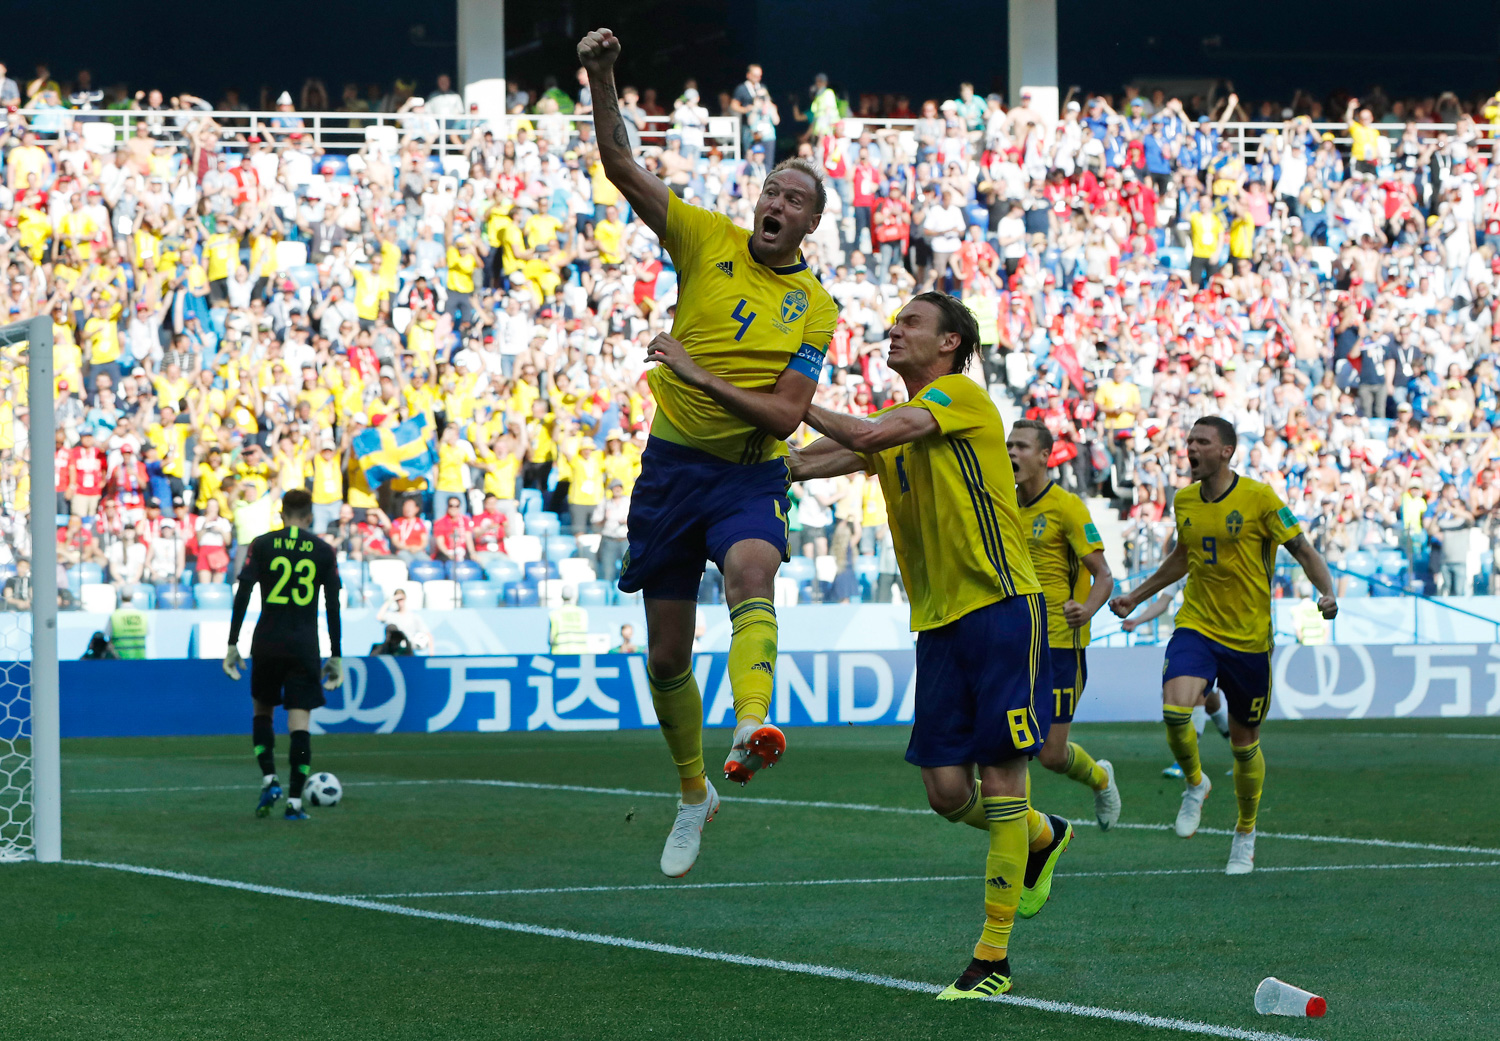 <div class='meta'><div class='origin-logo' data-origin='none'></div><span class='caption-text' data-credit='Pavel Golovkin/AP'>Sweden's Andreas Granqvist, centre, celebrates after scoring the opening goal during the group F match between Sweden and South Korea at the 2018 soccer World Cup</span></div>